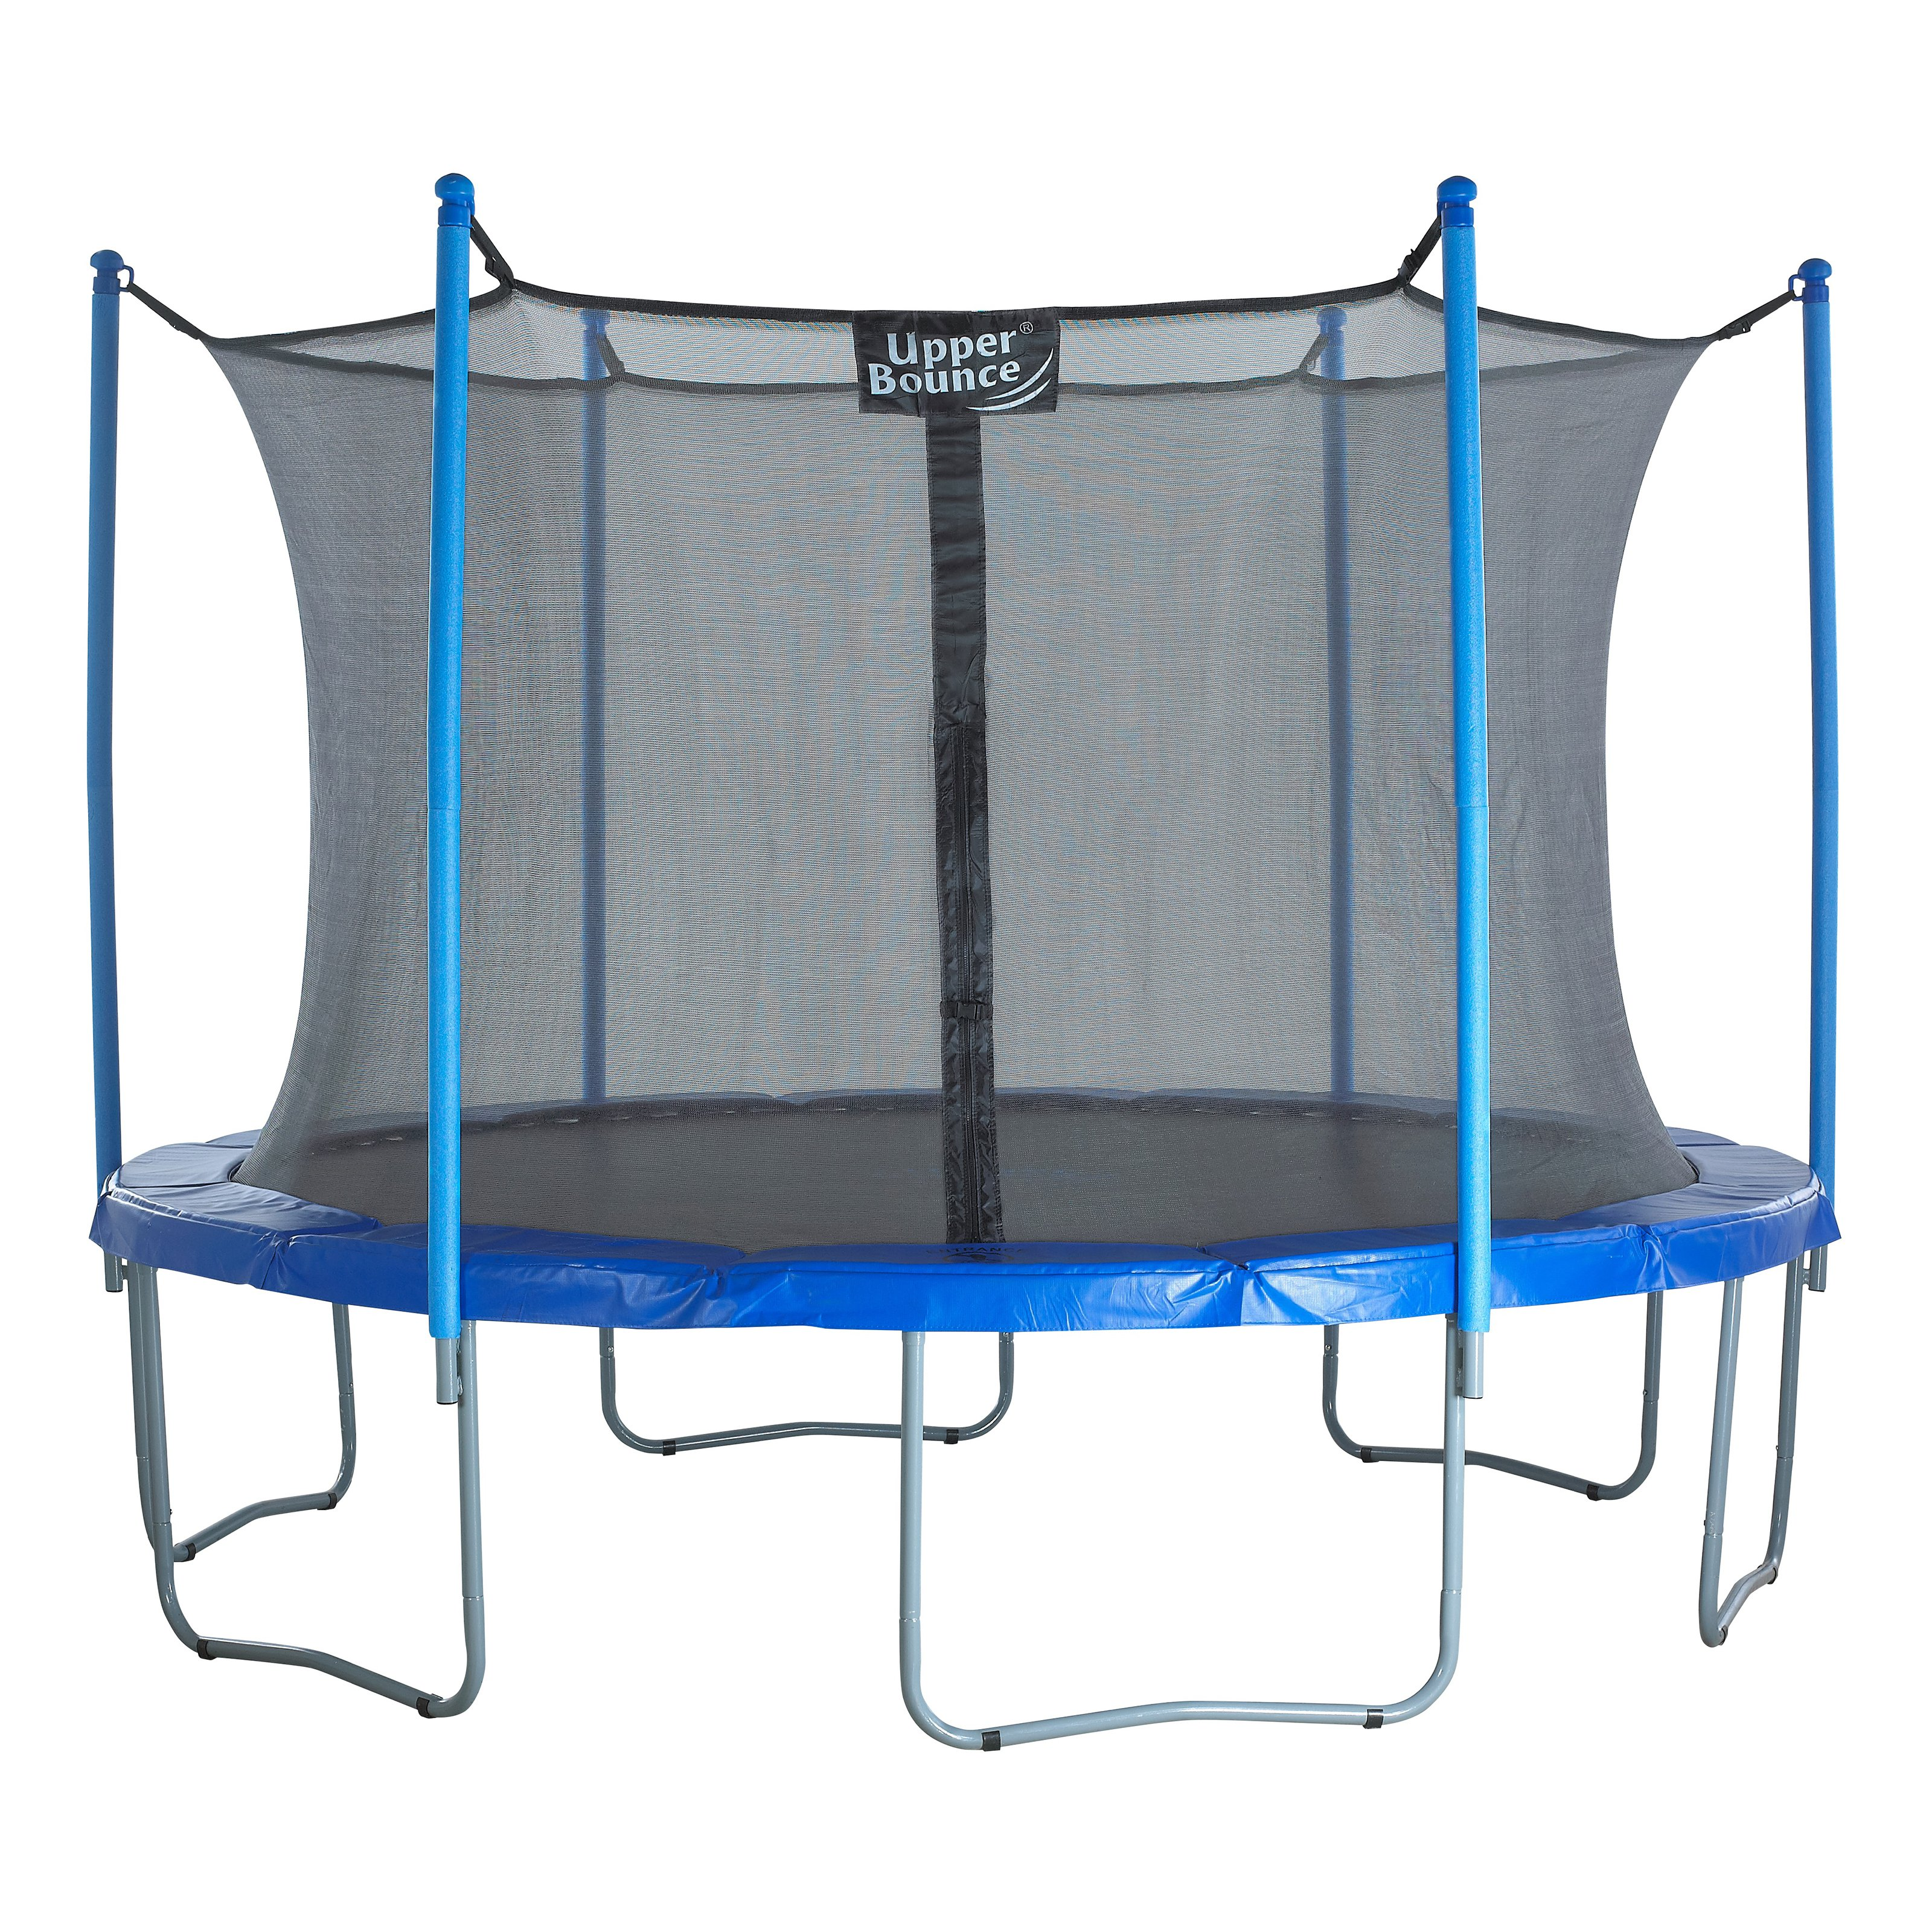 Upper Bounce 16 ft. Trampoline and Enclosure Set